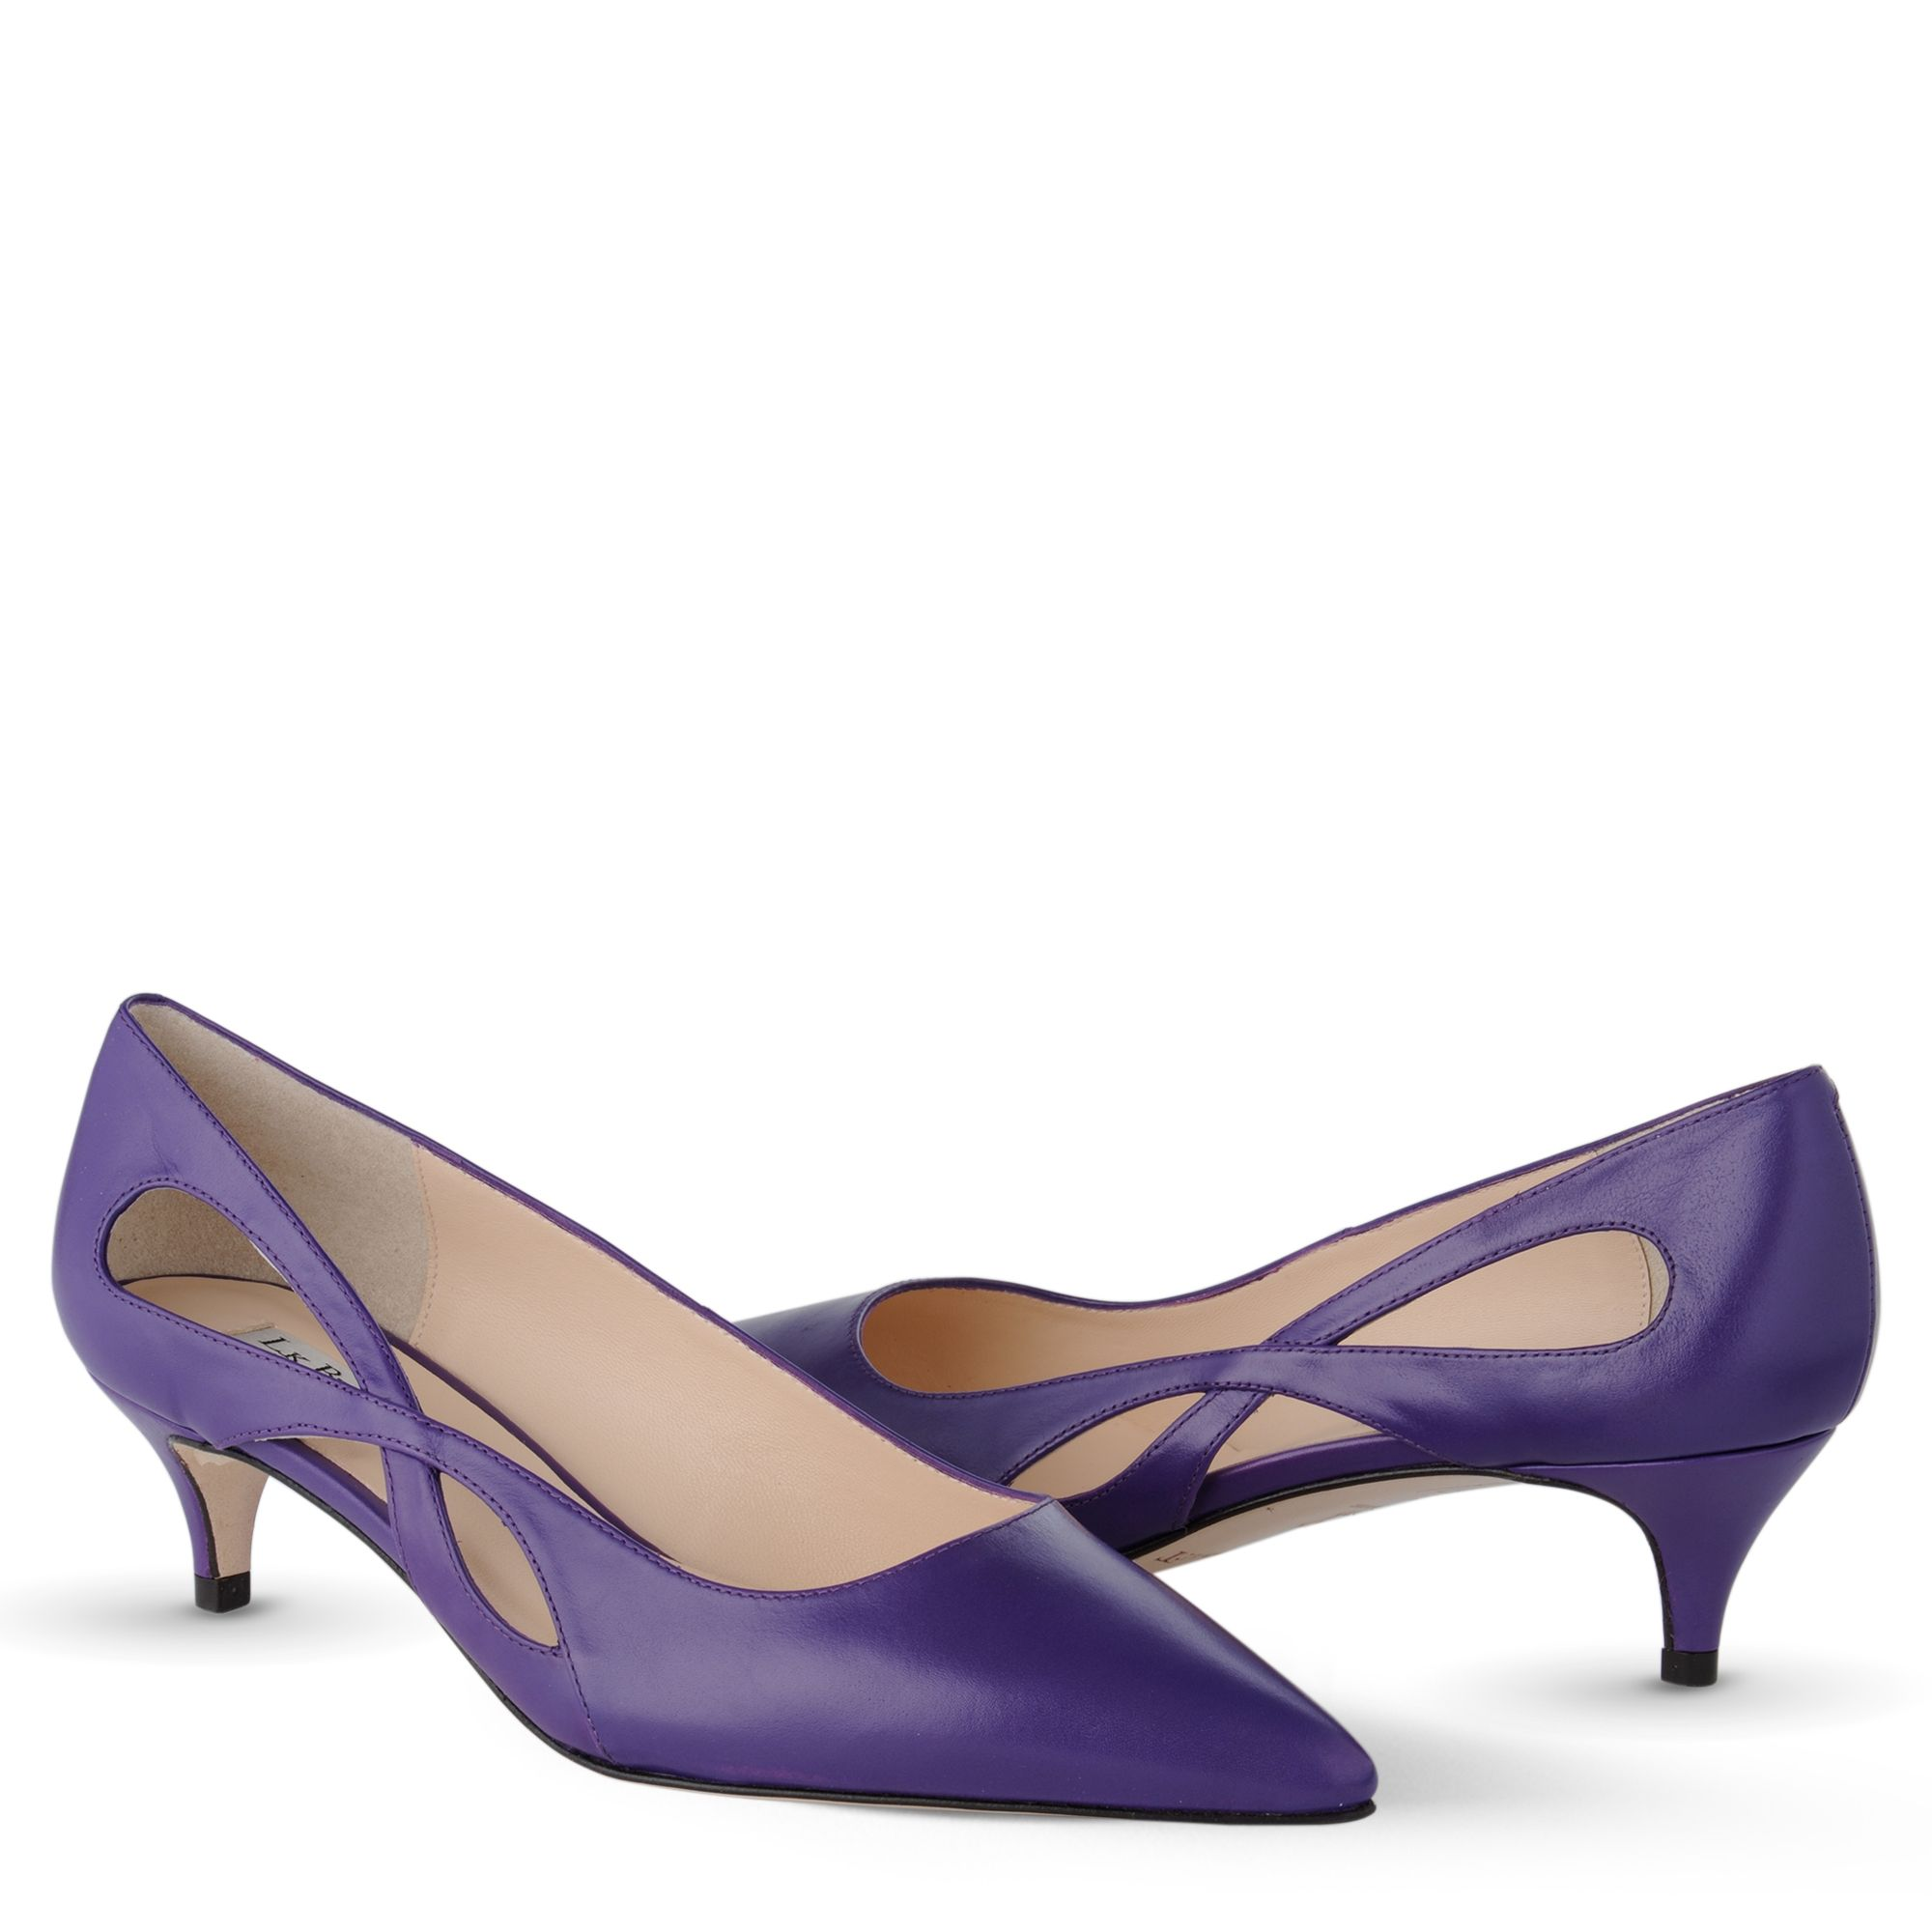 L.k.bennett Azalea Kitten Heel Court Shoes in Purple | Lyst